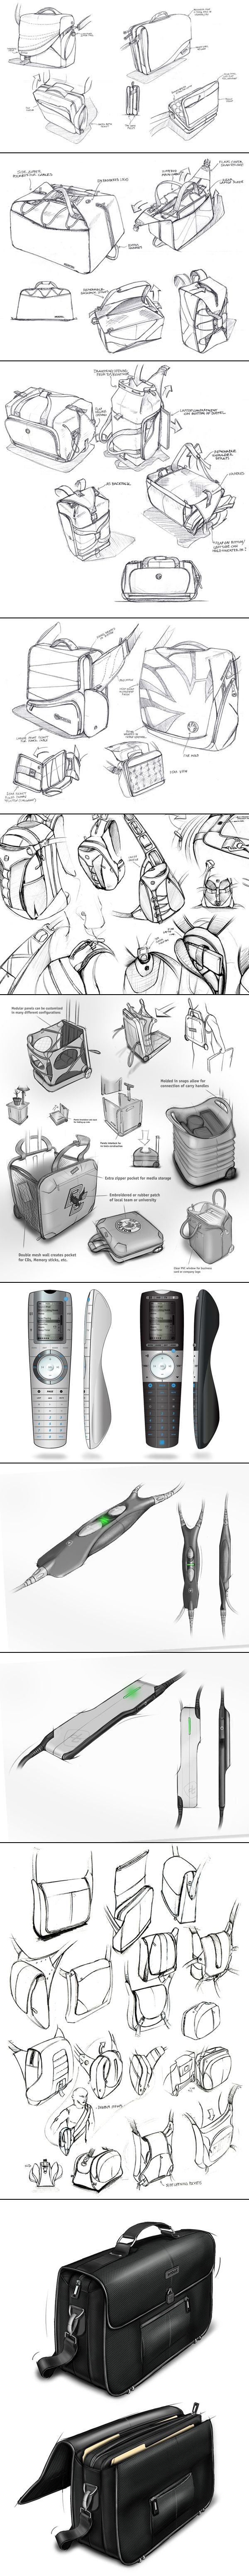 product design sketching, sketches, soft goods sketching, bag design. studioFAR - Soft G - created via http://pinthemall.net